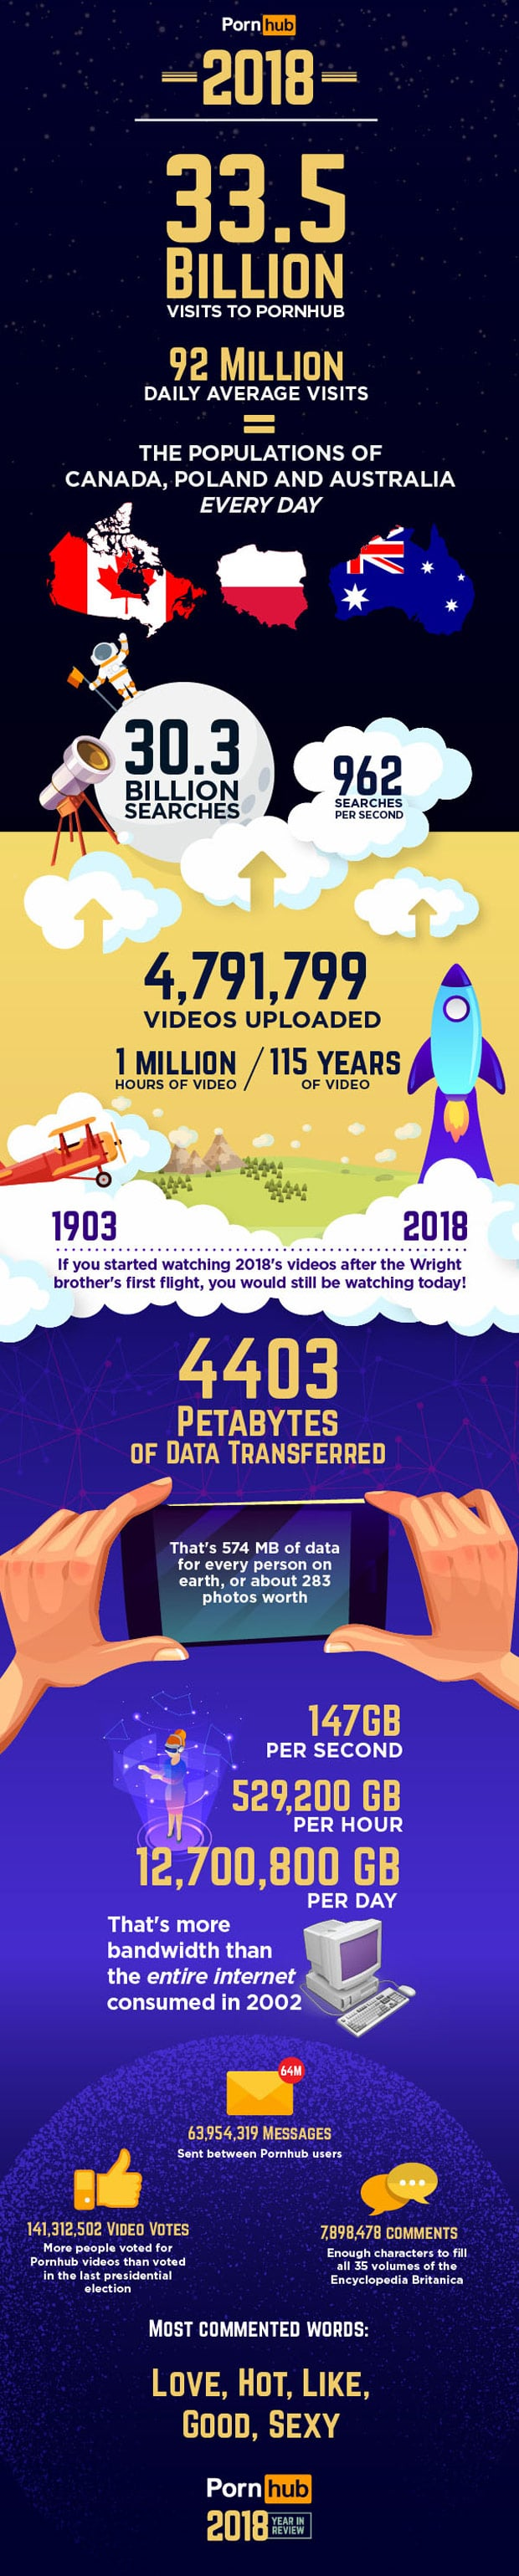 pornhub insights year review big numbers infographic